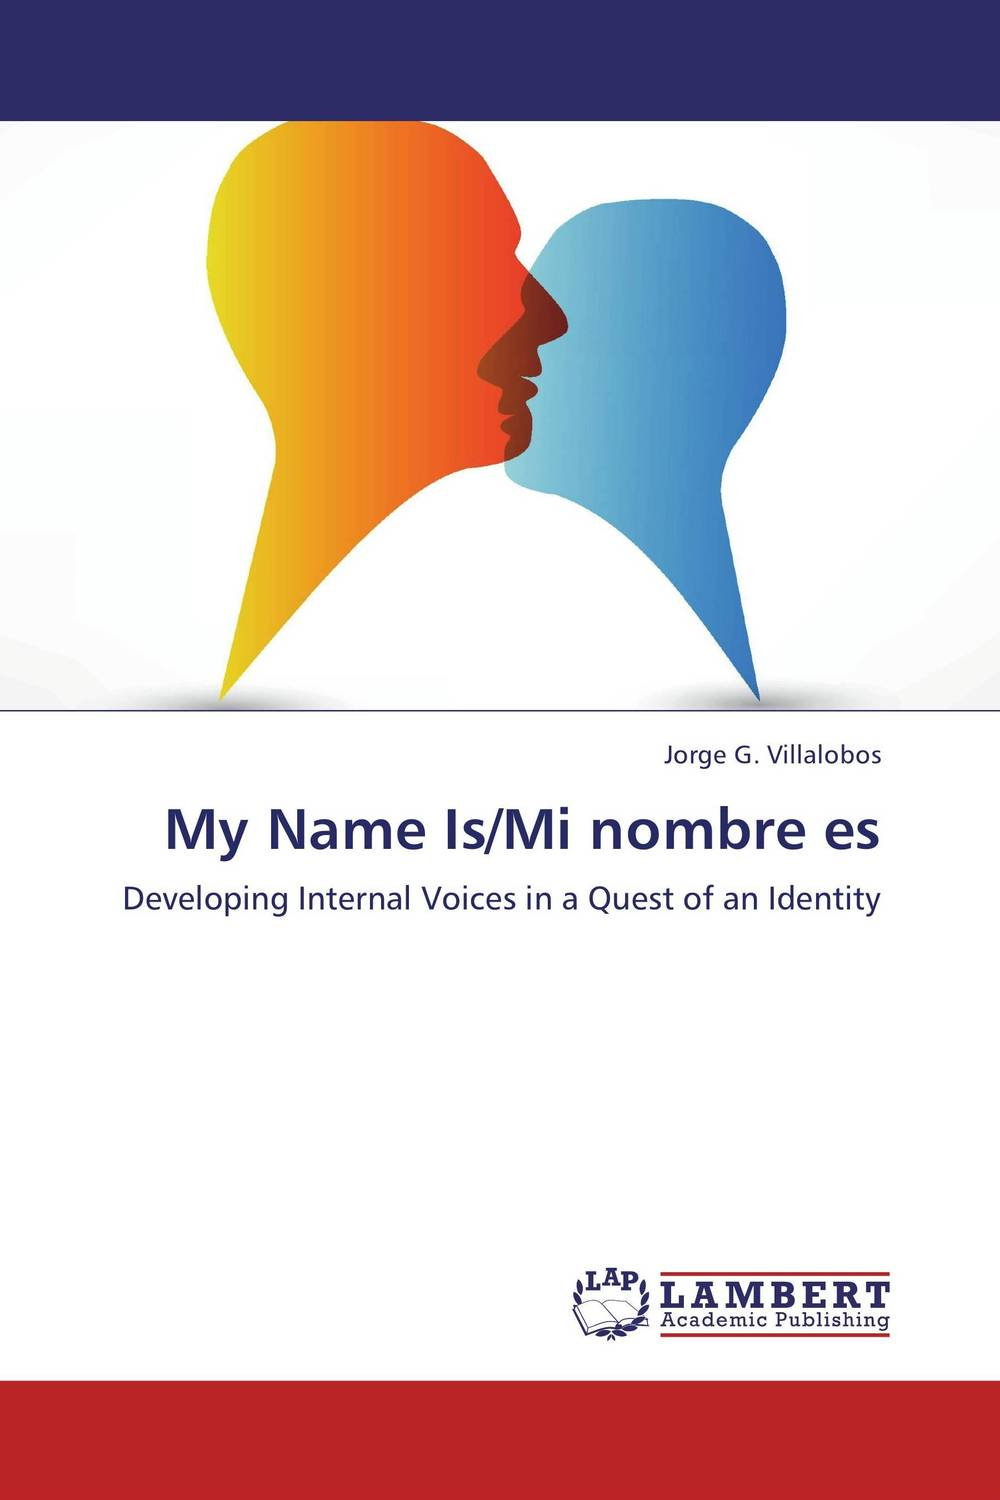 My Name Is/Mi nombre es on my own